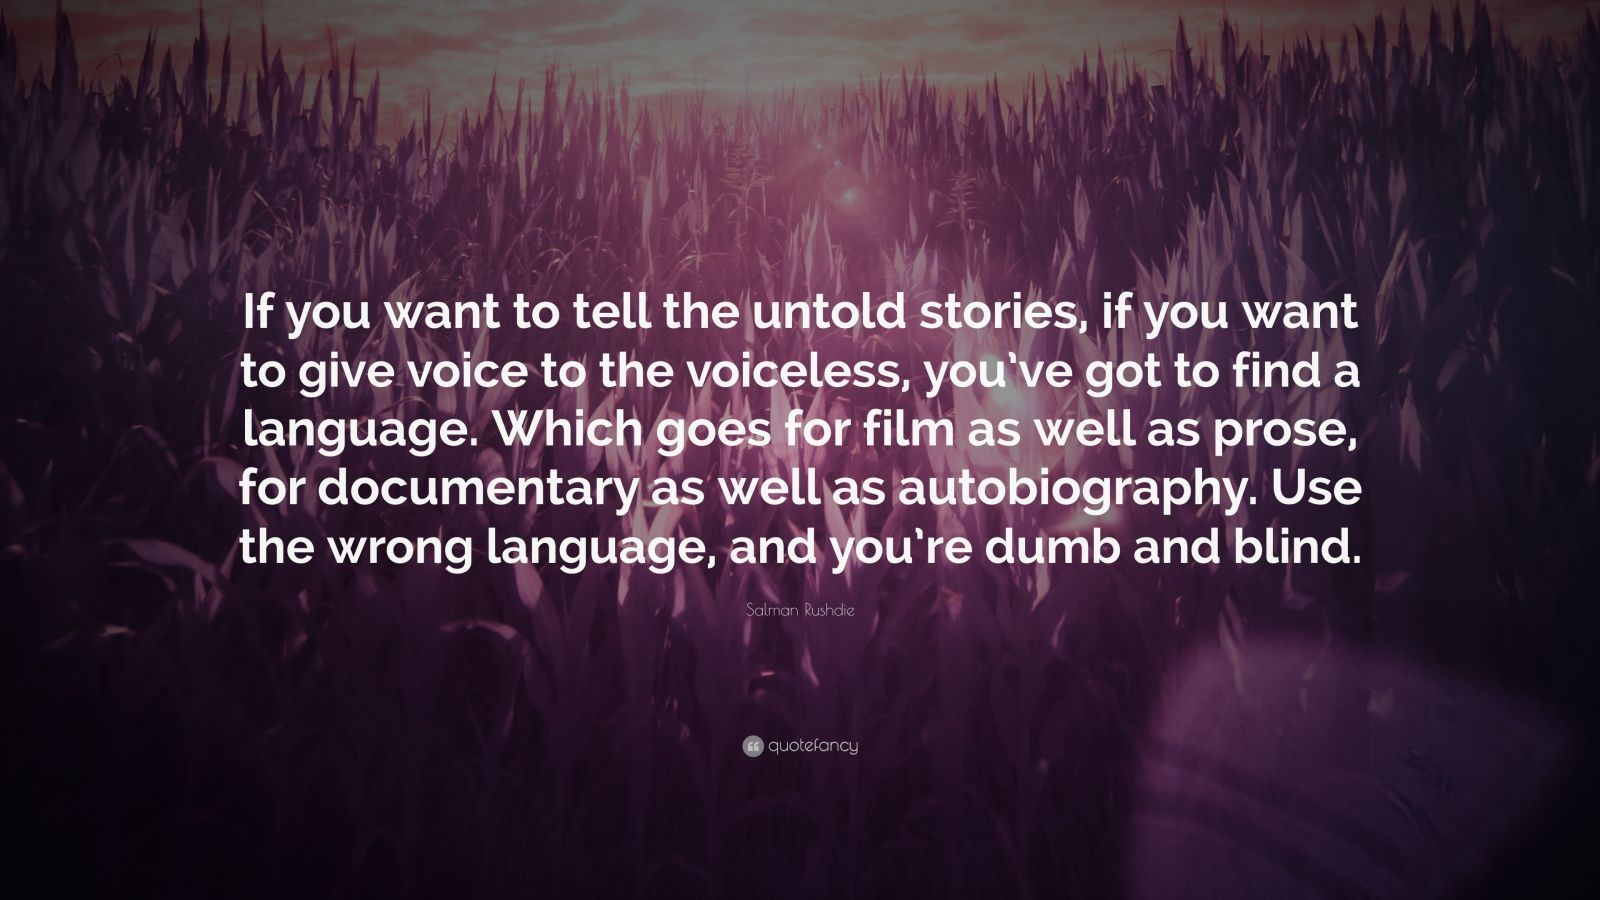 """Salman Rushdie Quote: """"If you want to tell the untold stories, if you want to give voice to the voiceless, you've got to find a language. Which goes for film as well as prose, for documentary as well as autobiography. Use the wrong language, and you're dumb and blind."""""""